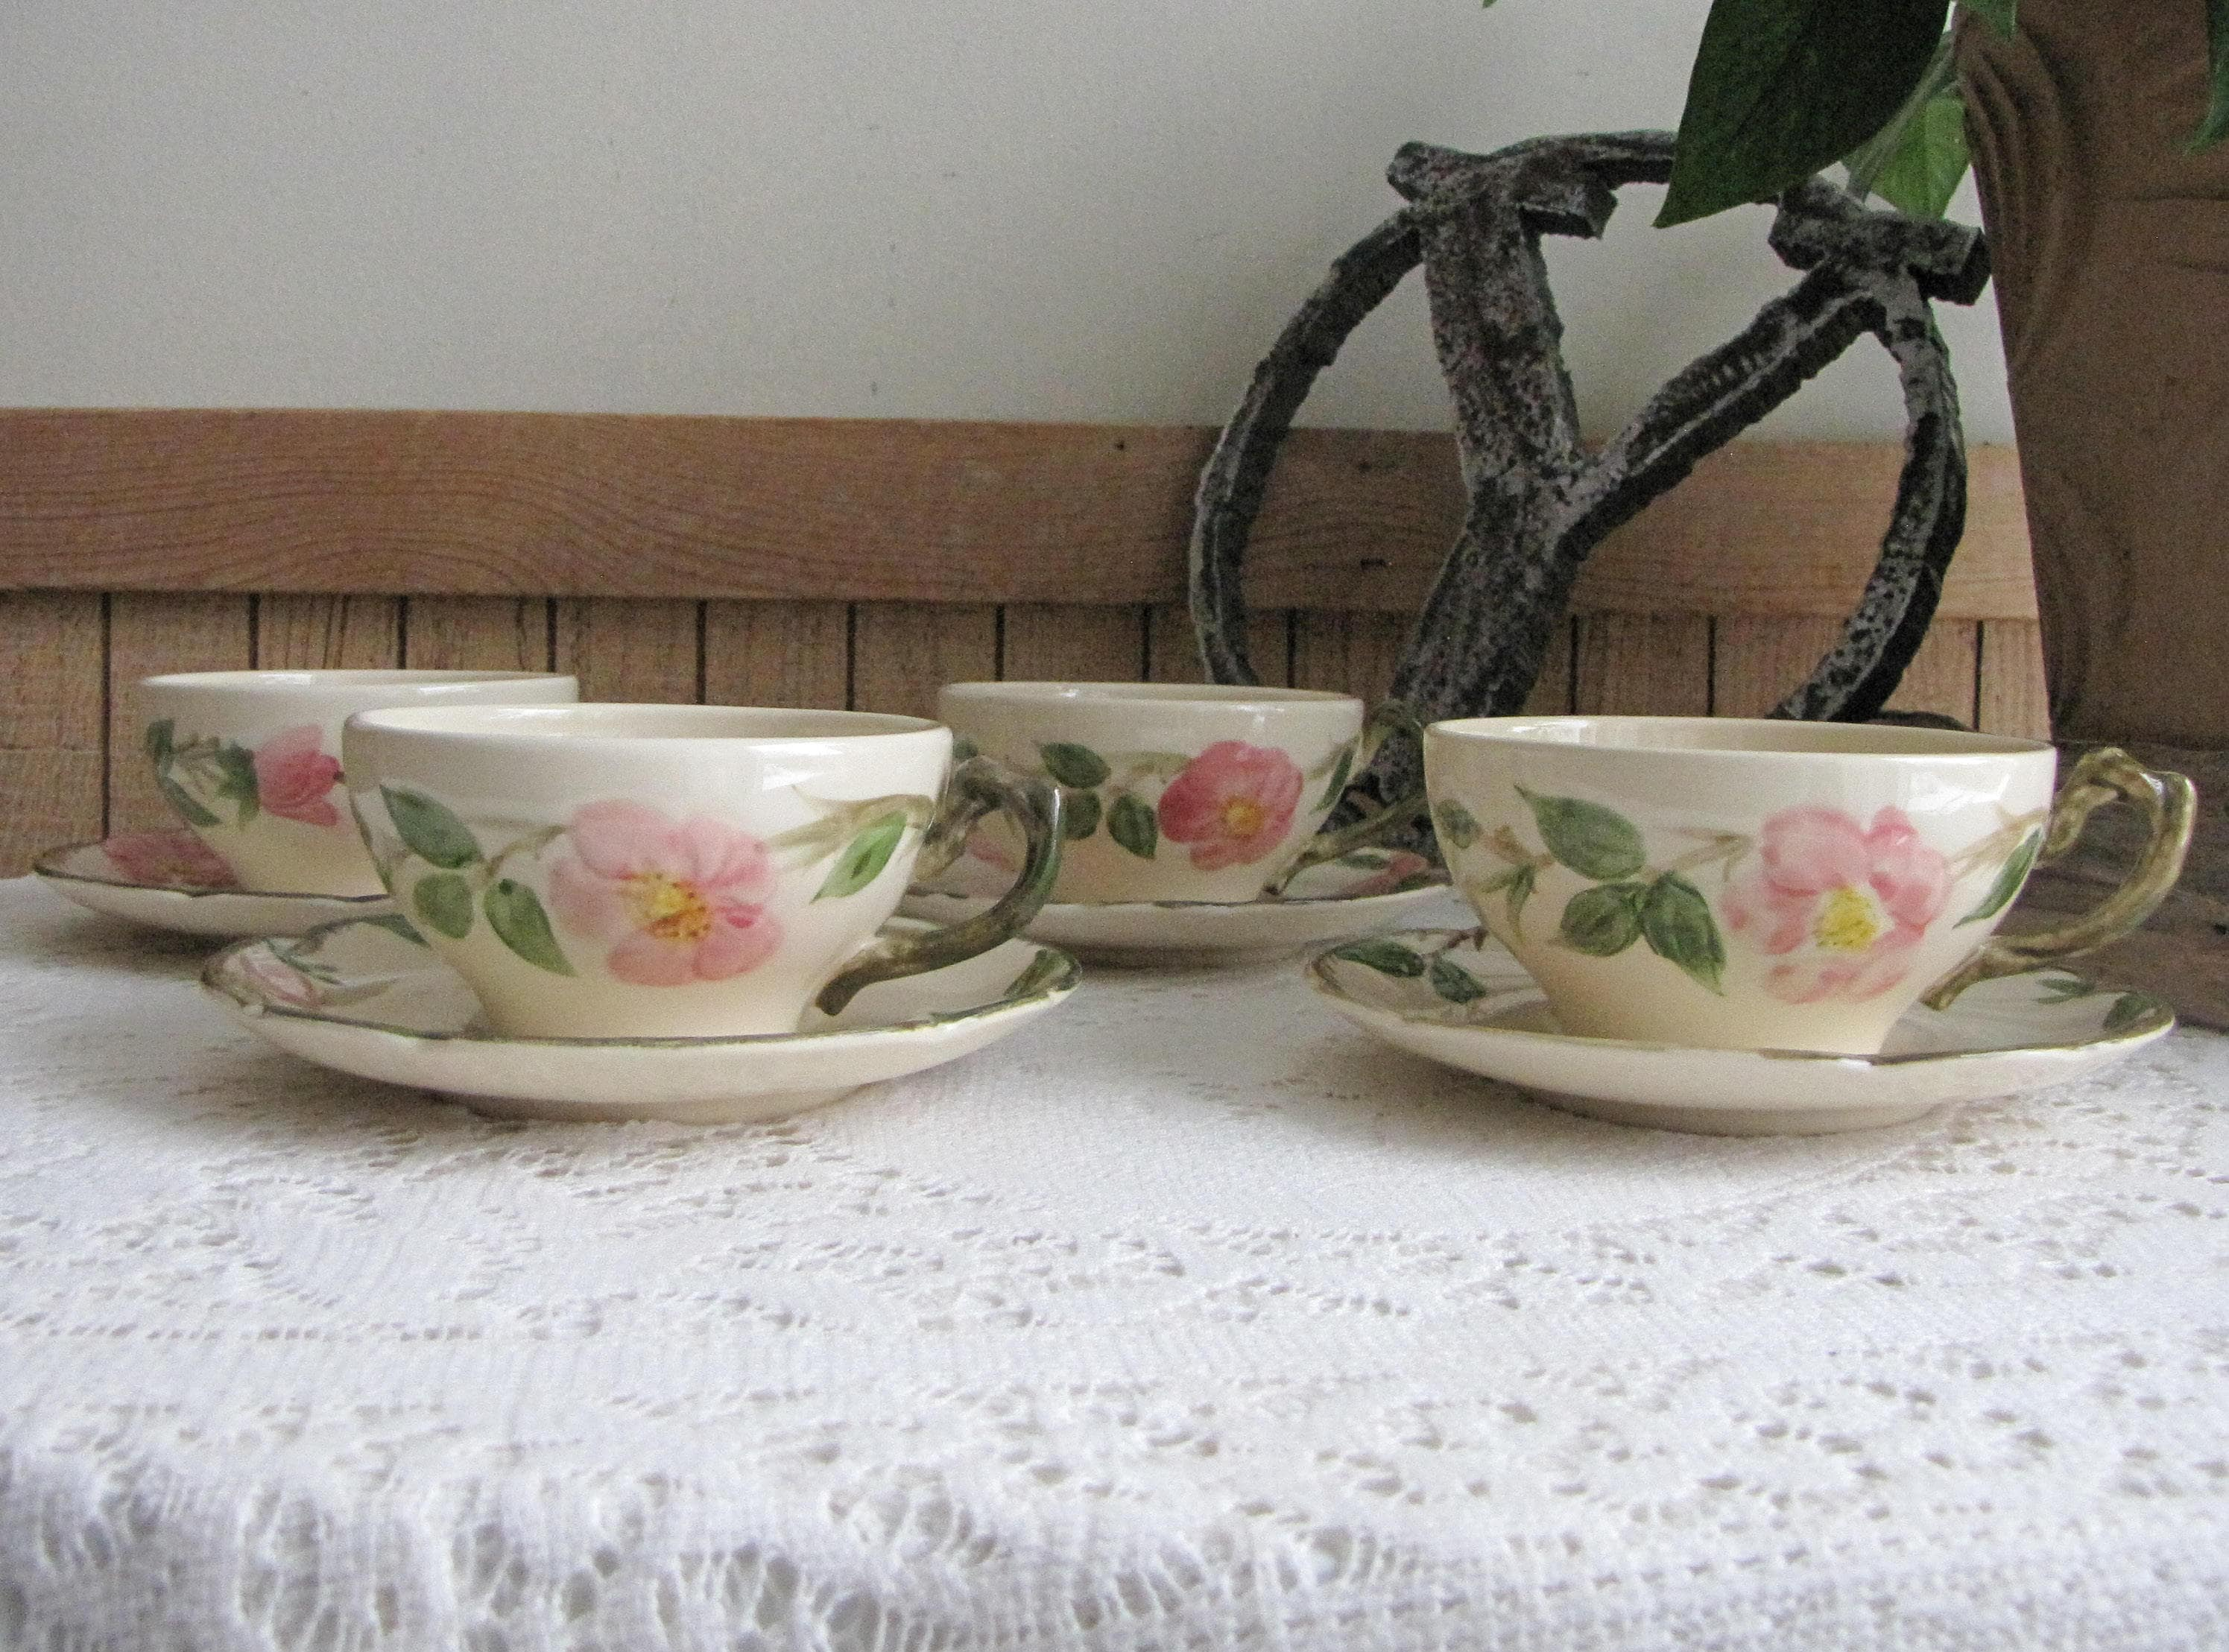 Franciscan Desert Rose Cups and Saucers Vintage Dinnerware and Replacements Set of Four (4) Made in California 1953-1958 & Franciscan Desert Rose Cups and Saucers Vintage Dinnerware and ...